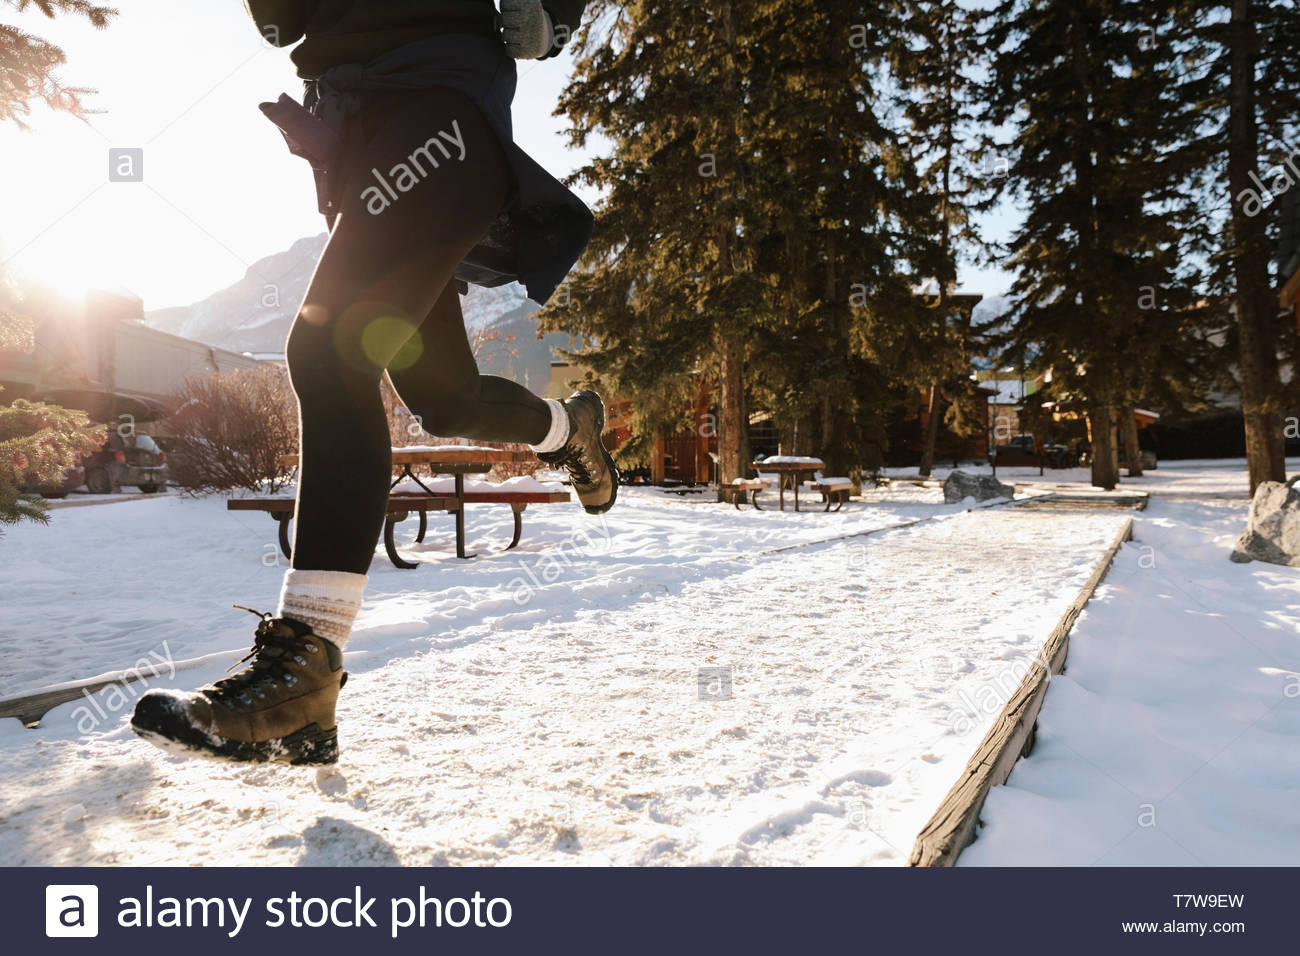 Woman running in snow Photo Stock